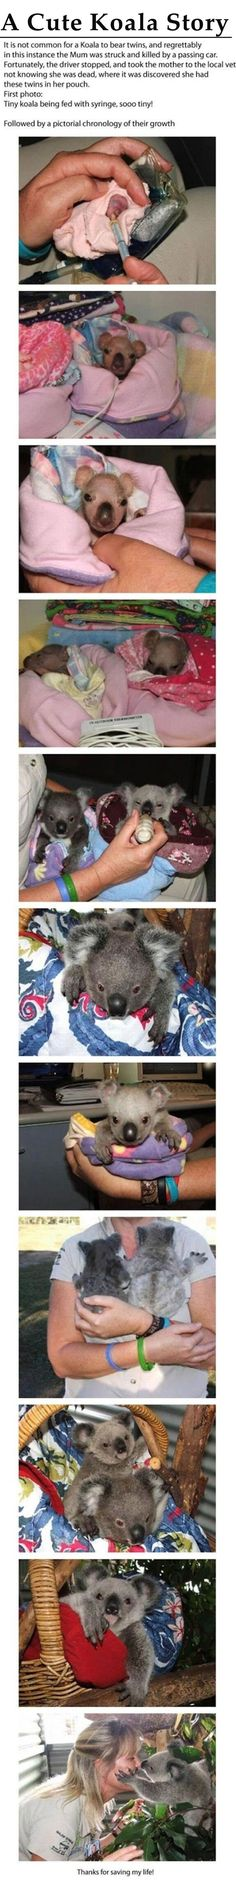 A Cute Koala Story cute animals adorable story animal baby animals koalas stories heart warming